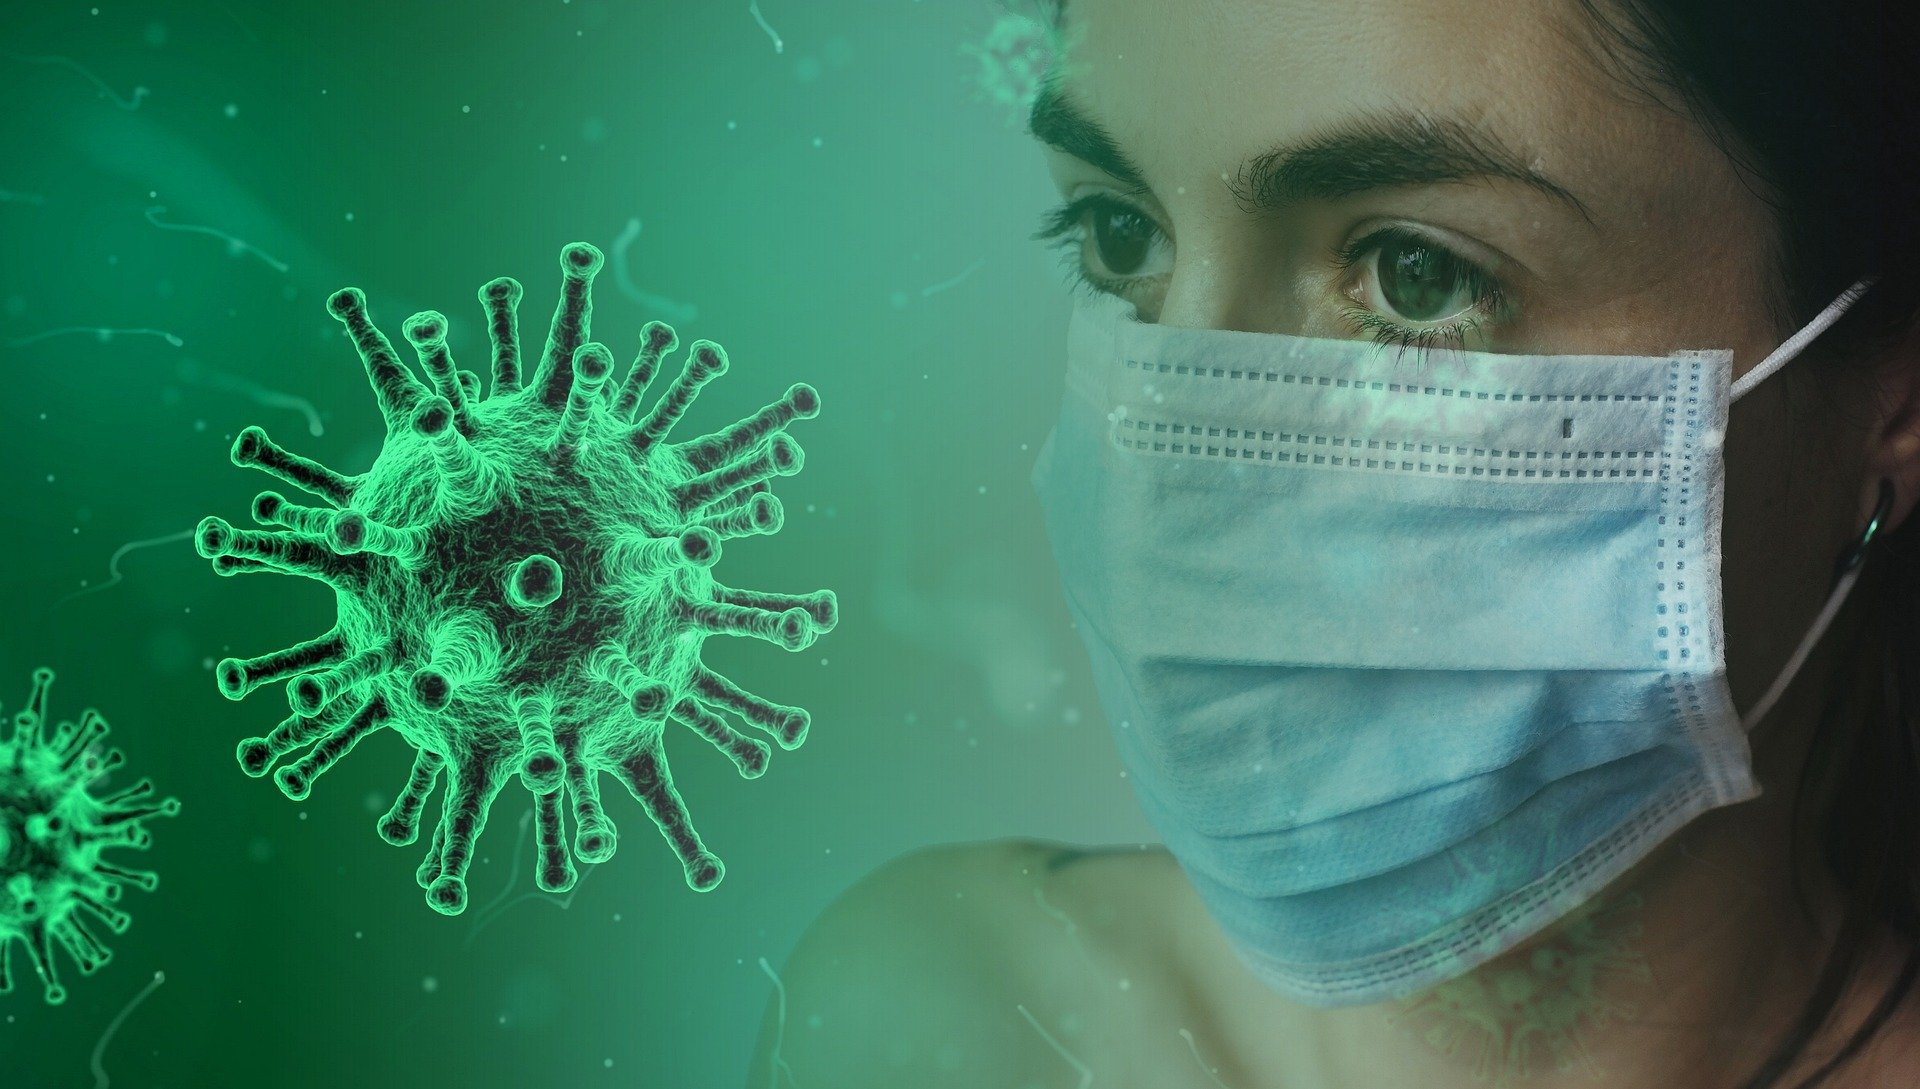 does wearing a mask protect you from coronavirus